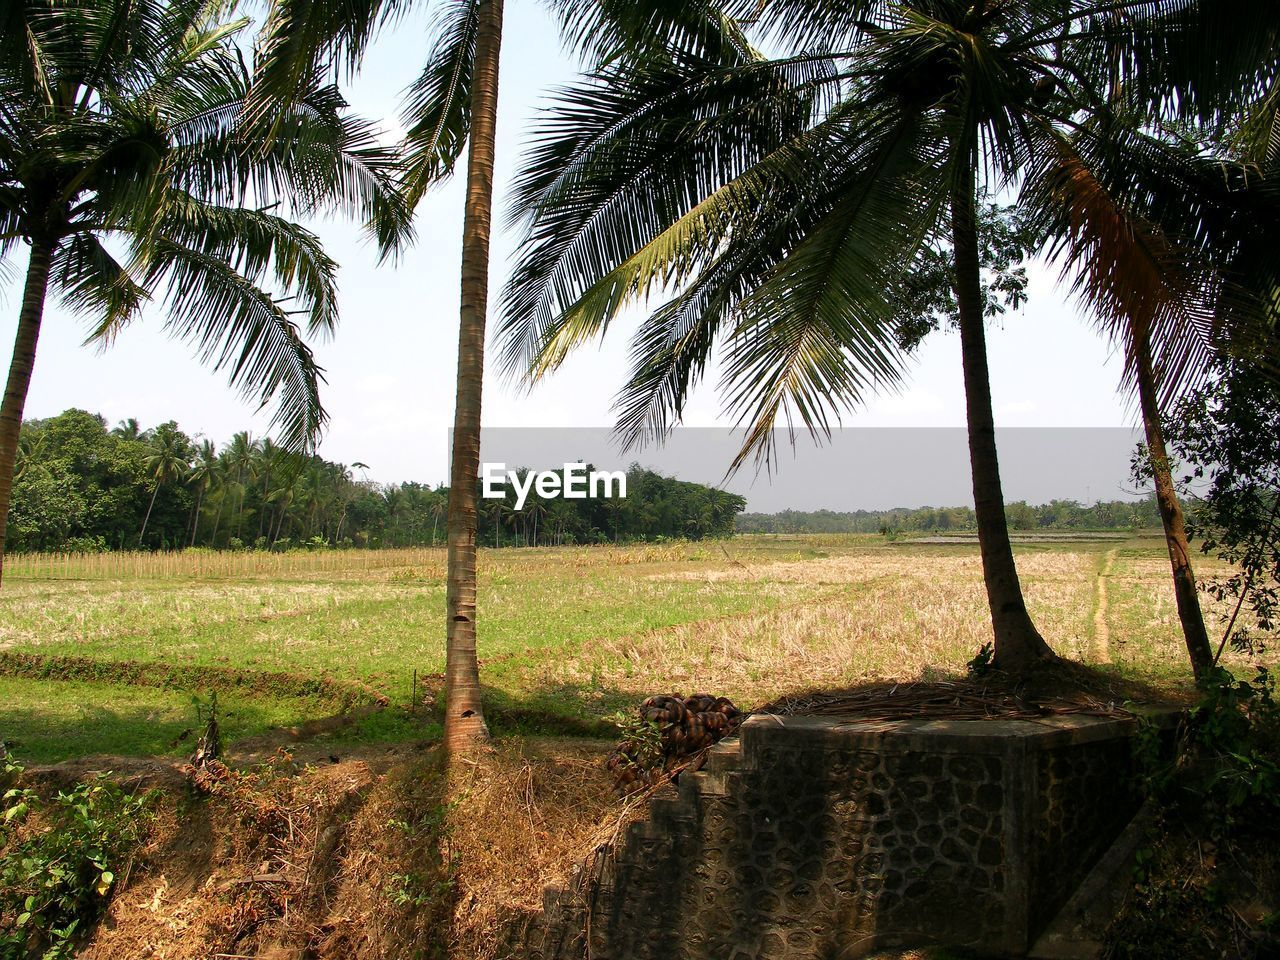 tree, palm tree, growth, nature, tranquil scene, scenics, no people, tree trunk, field, tranquility, beauty in nature, outdoors, day, agriculture, landscape, branch, sky, water